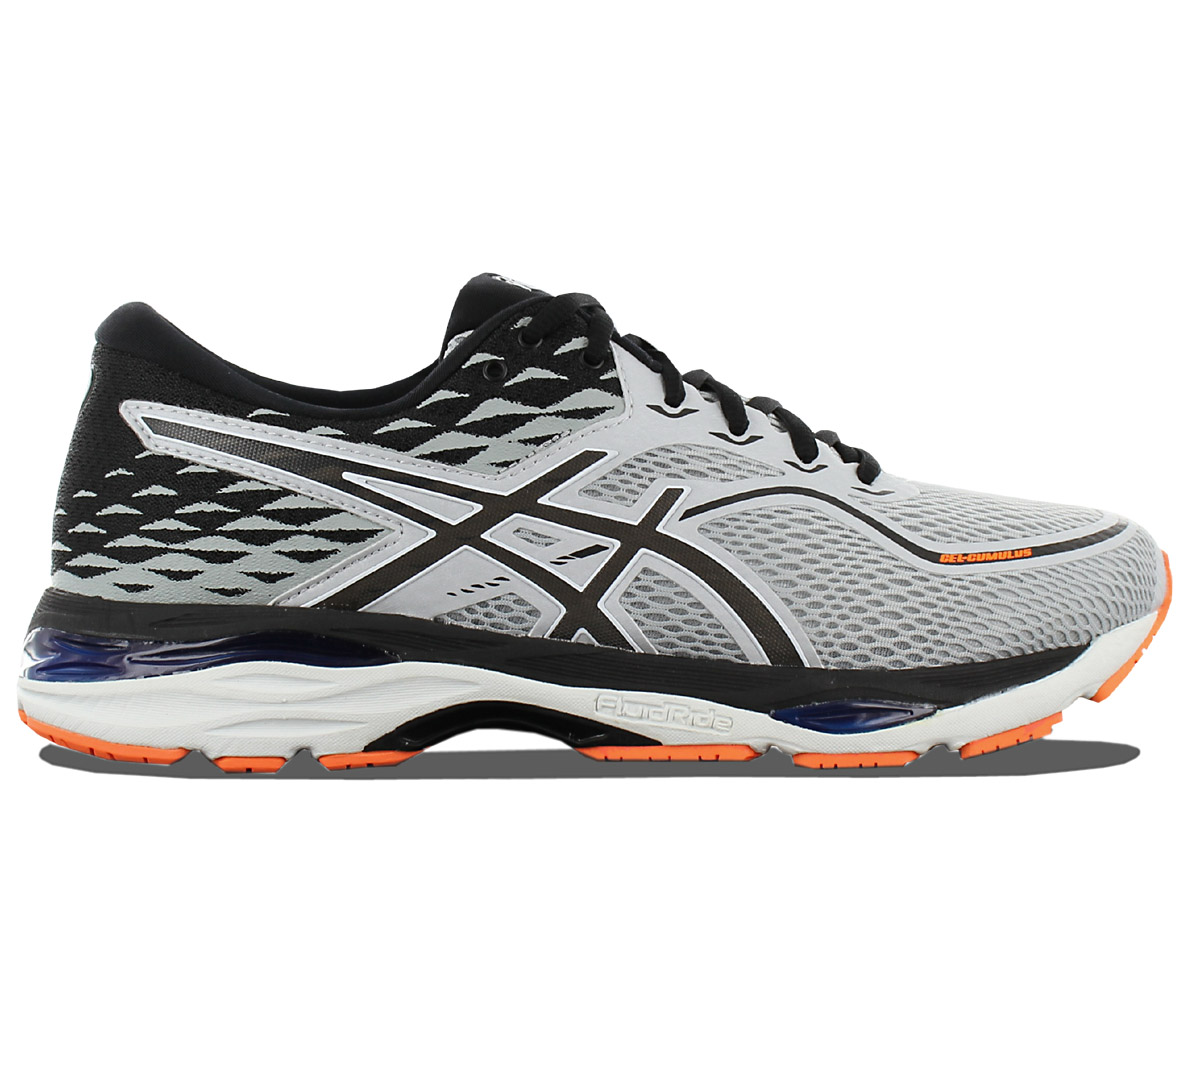 Details about Asics Gel Cumulus 19 Mens Running Sport Fitness Shoes T7B3N 9601